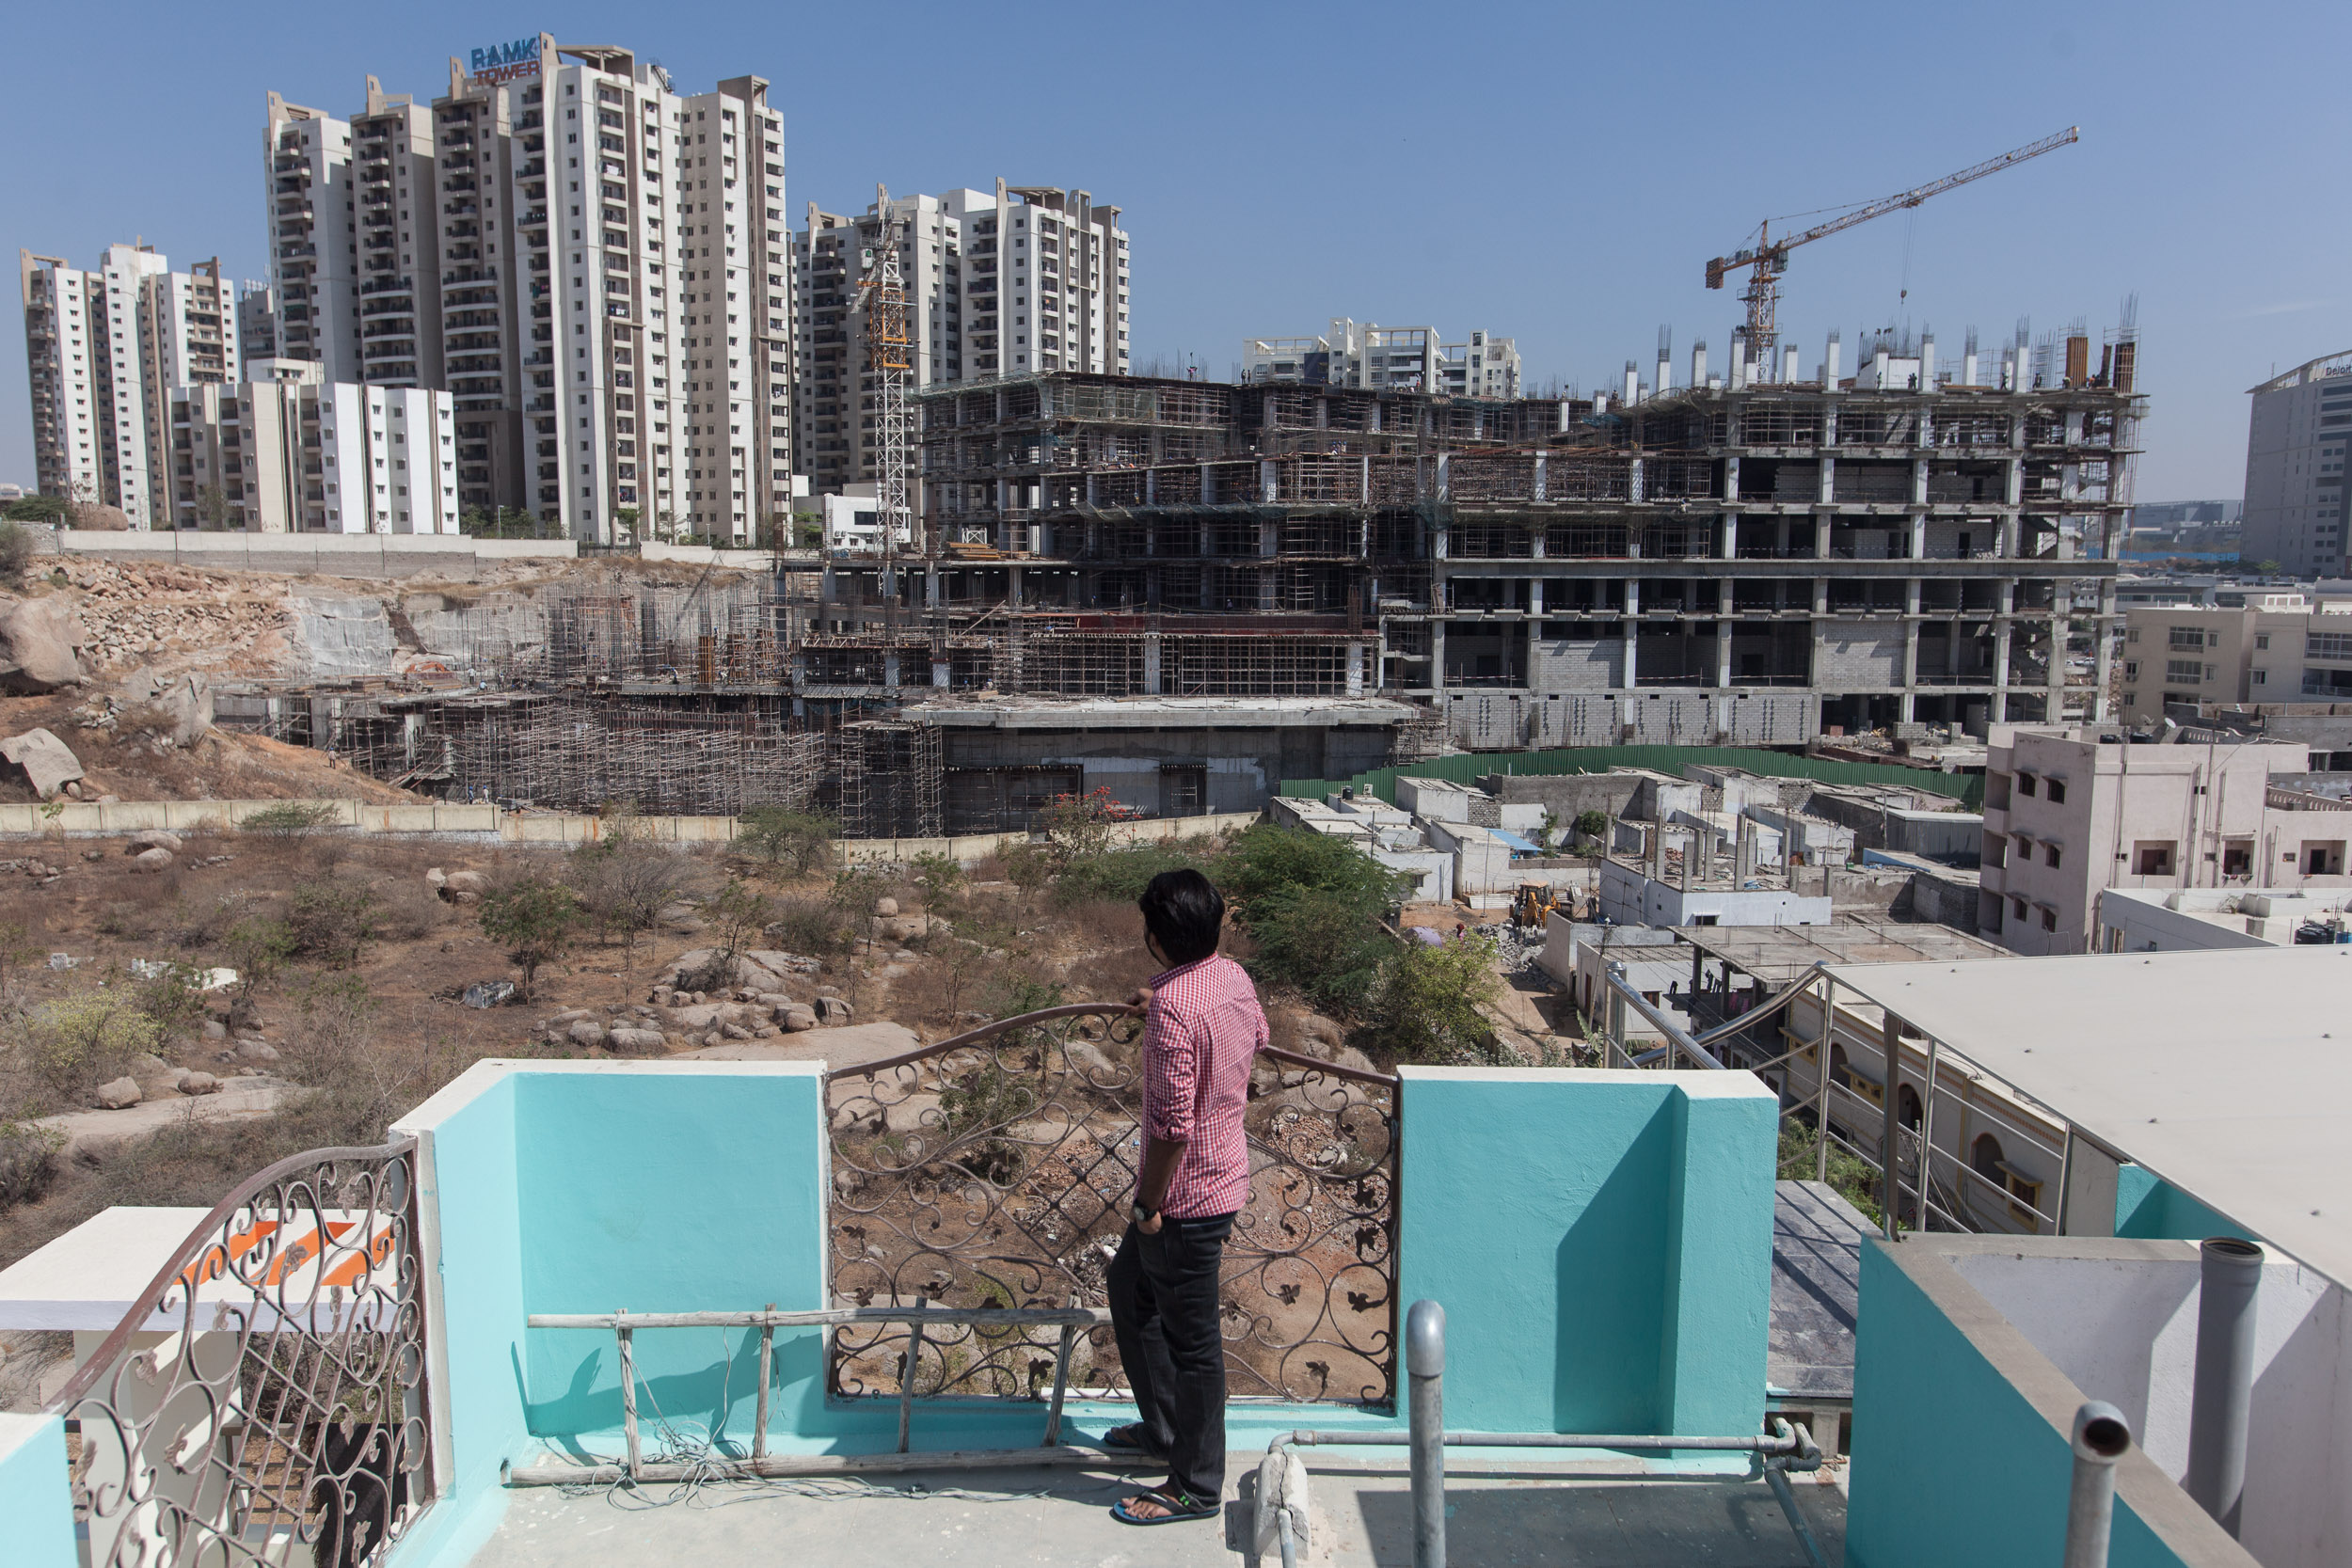 A 30 year-old management consultant, who has been denied an H1-B looks towards Cyberabad area from the terrace of his apartment.